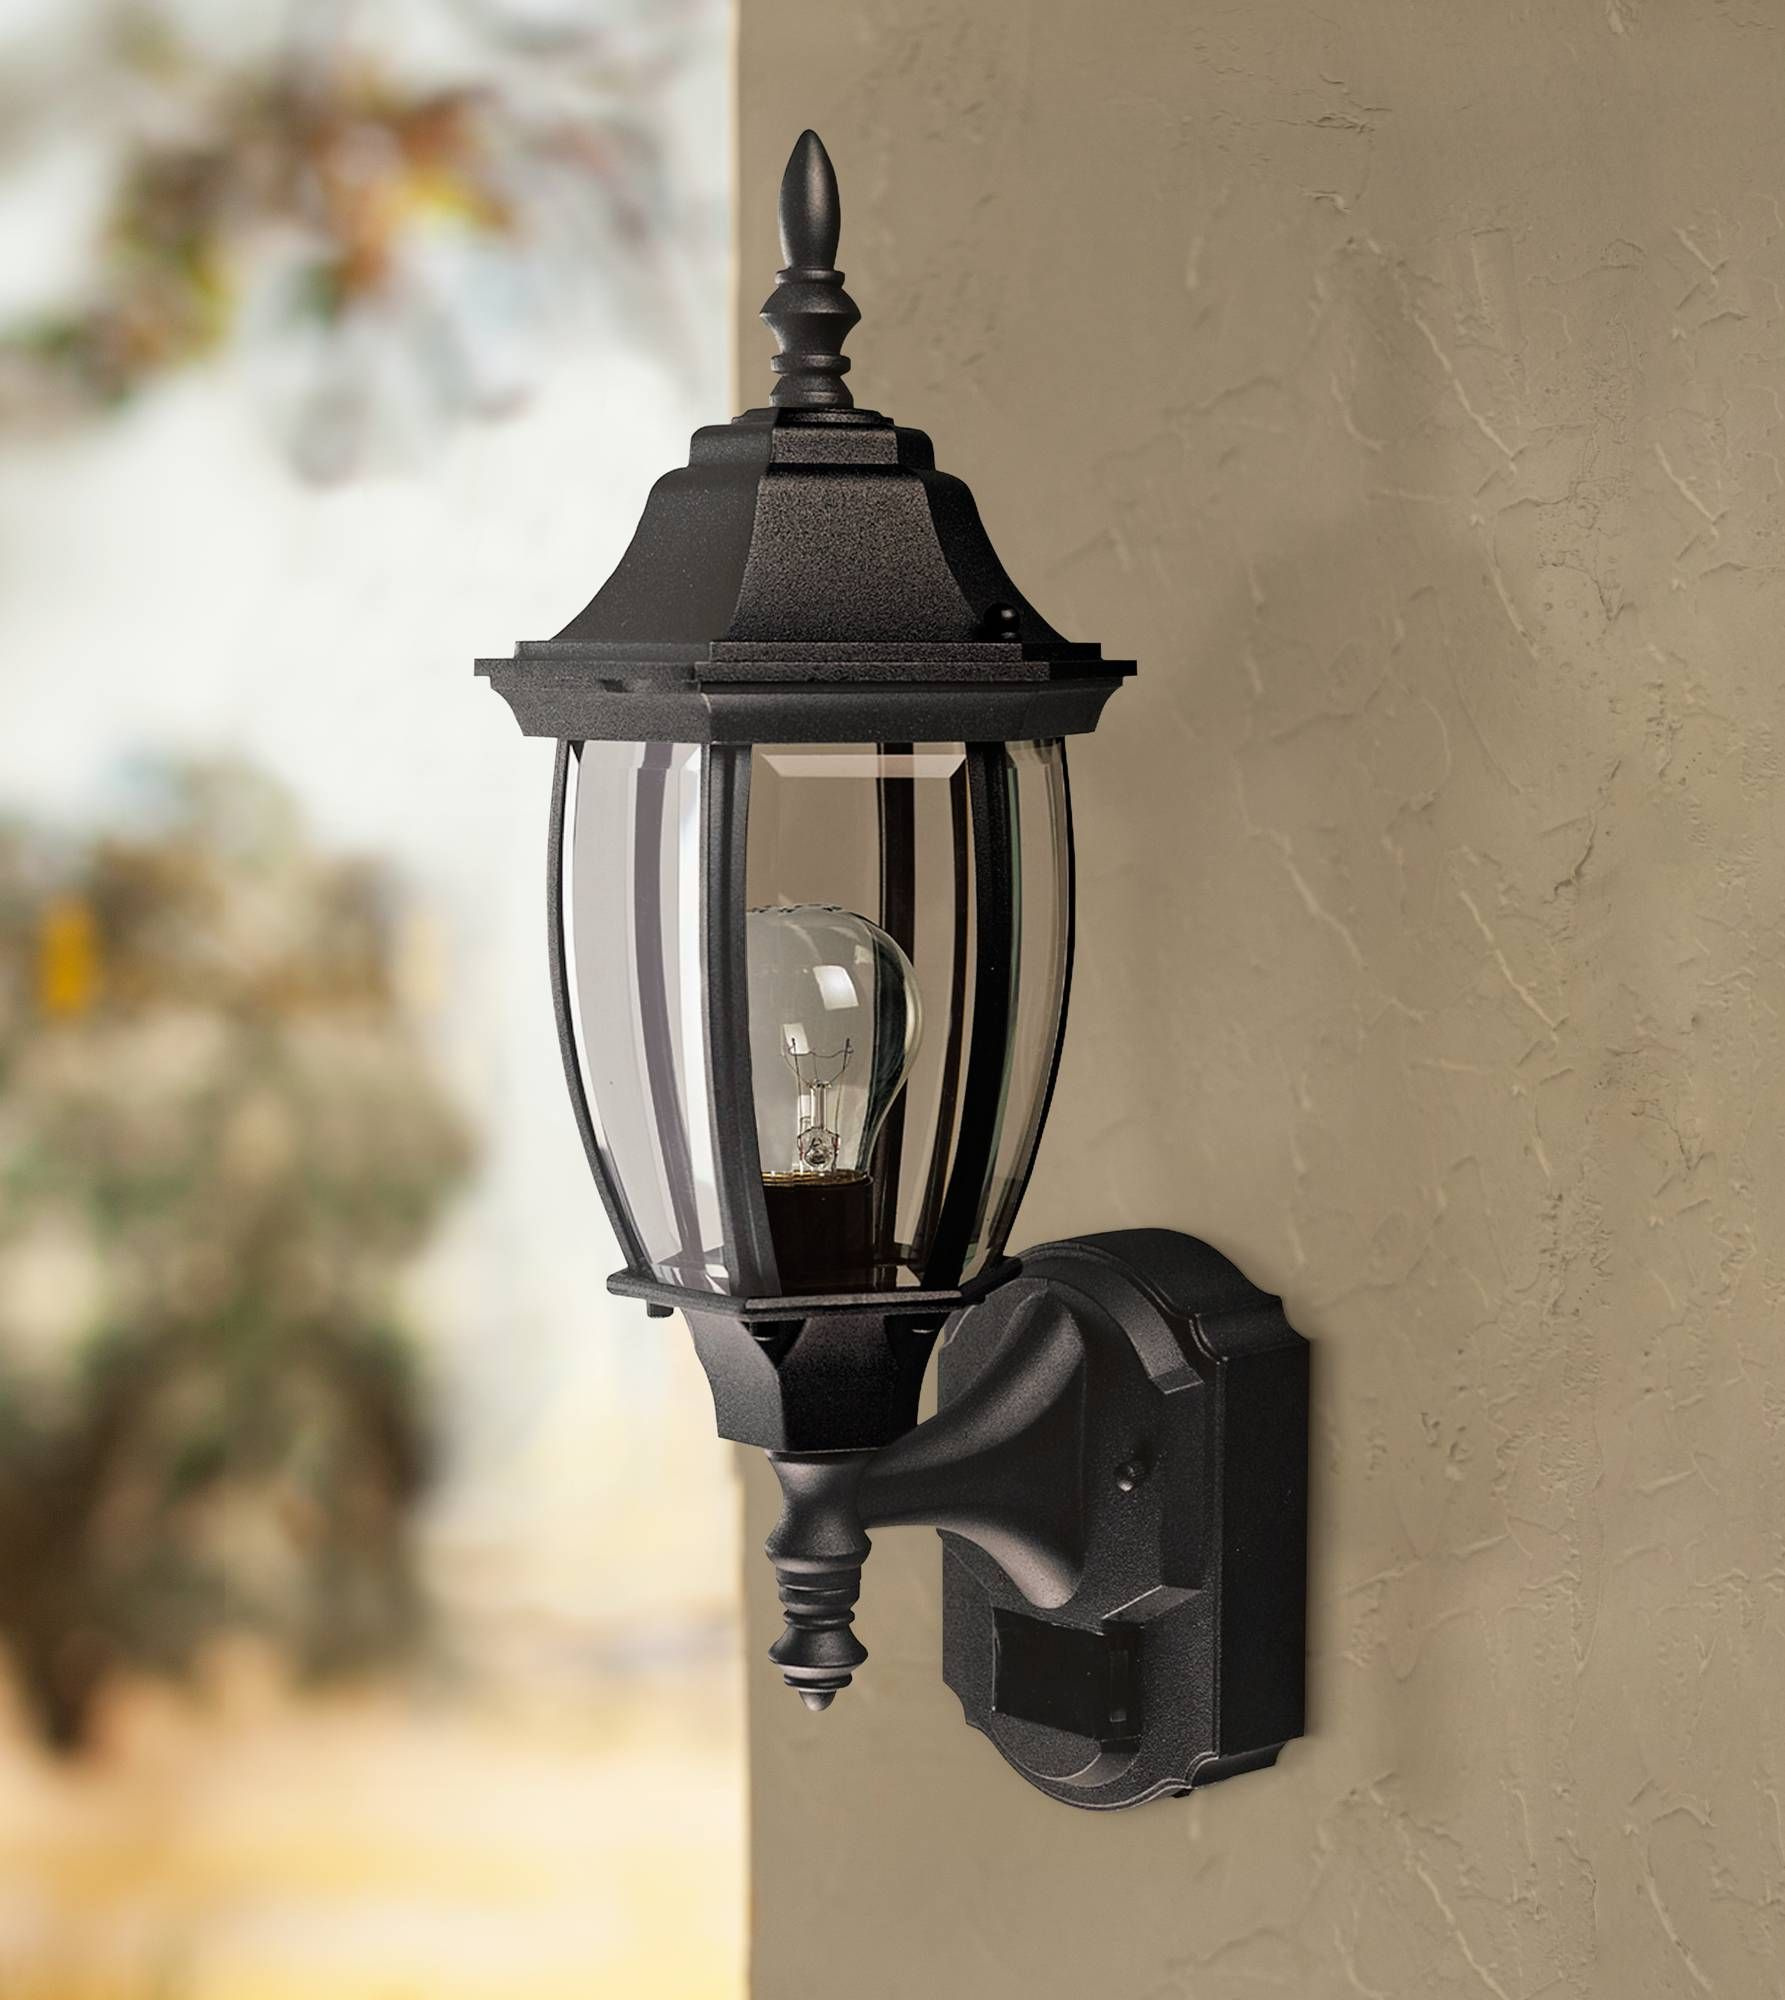 Alexandria 18 12 high motion sensor outdoor light in black style alexandria 18 12 high motion sensor outdoor light in black h7004 lamps plus mozeypictures Image collections